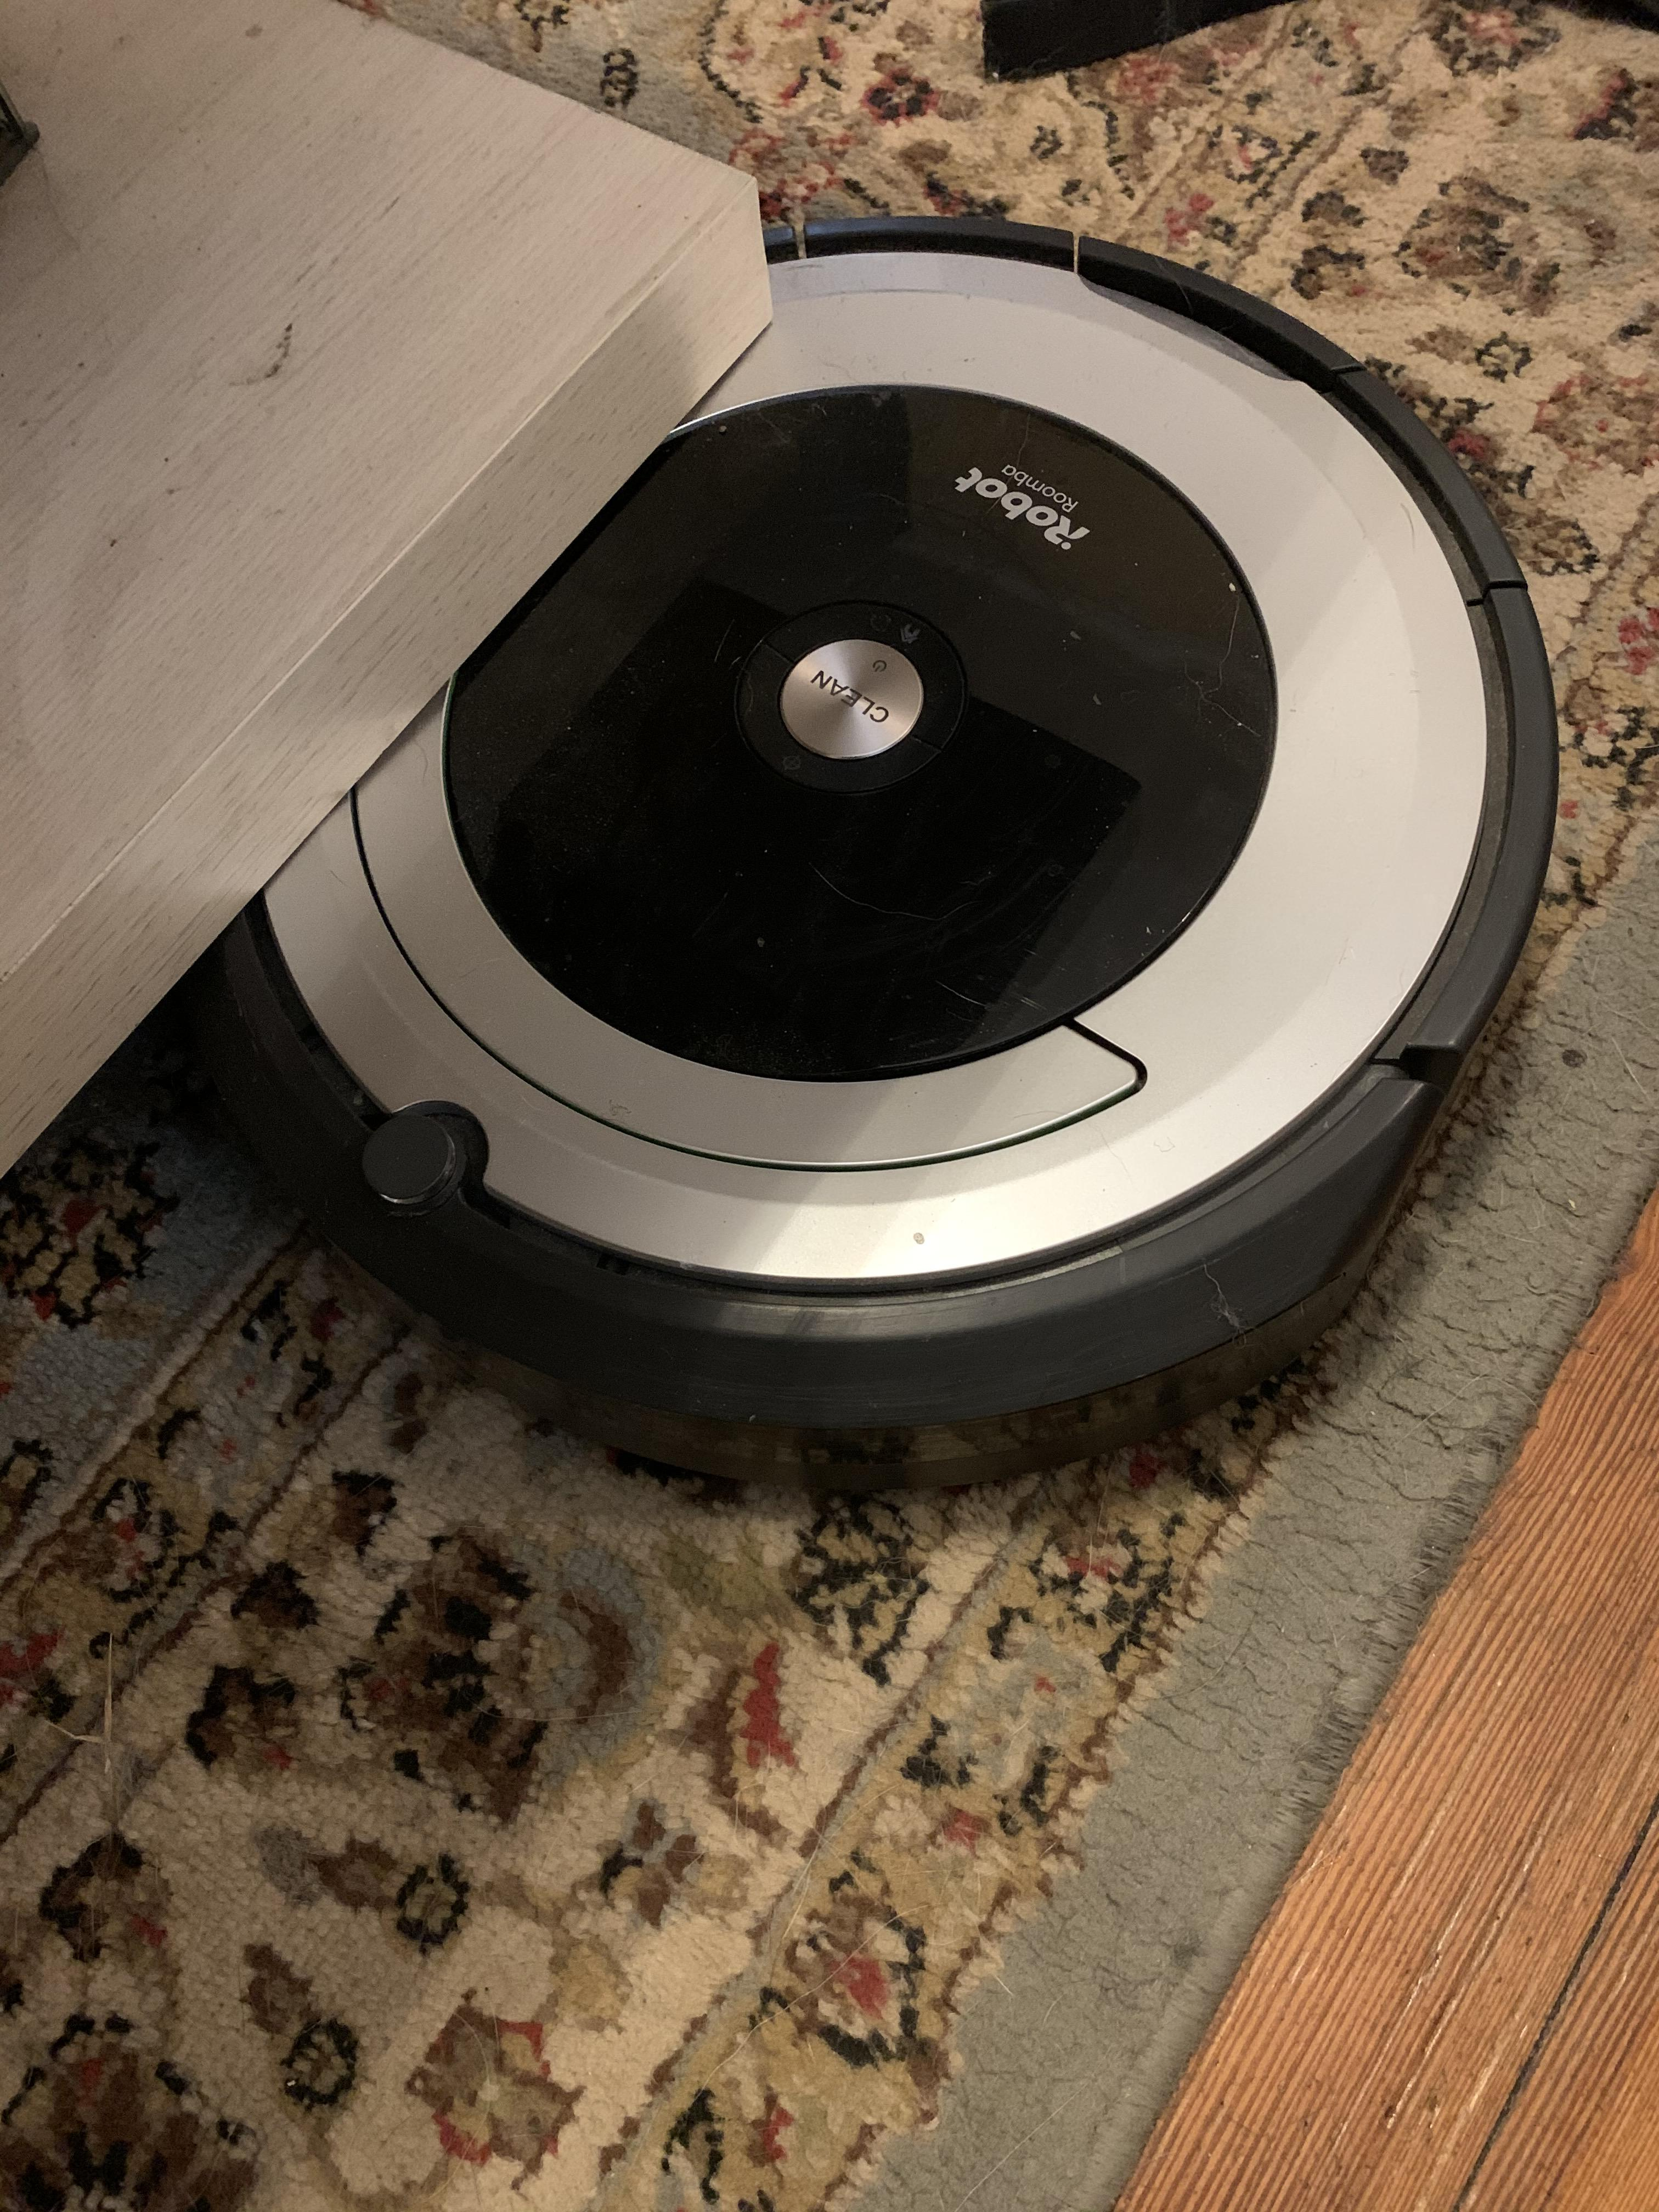 Roomba Gets Stuck Under Furniture : roomba, stuck, under, furniture, Roomba, Always, Stuck, Under, Coffee, Table., Suggestions?, Maybe, Something, Could, Around, Still, Hidden?, Thanks, Y'all!